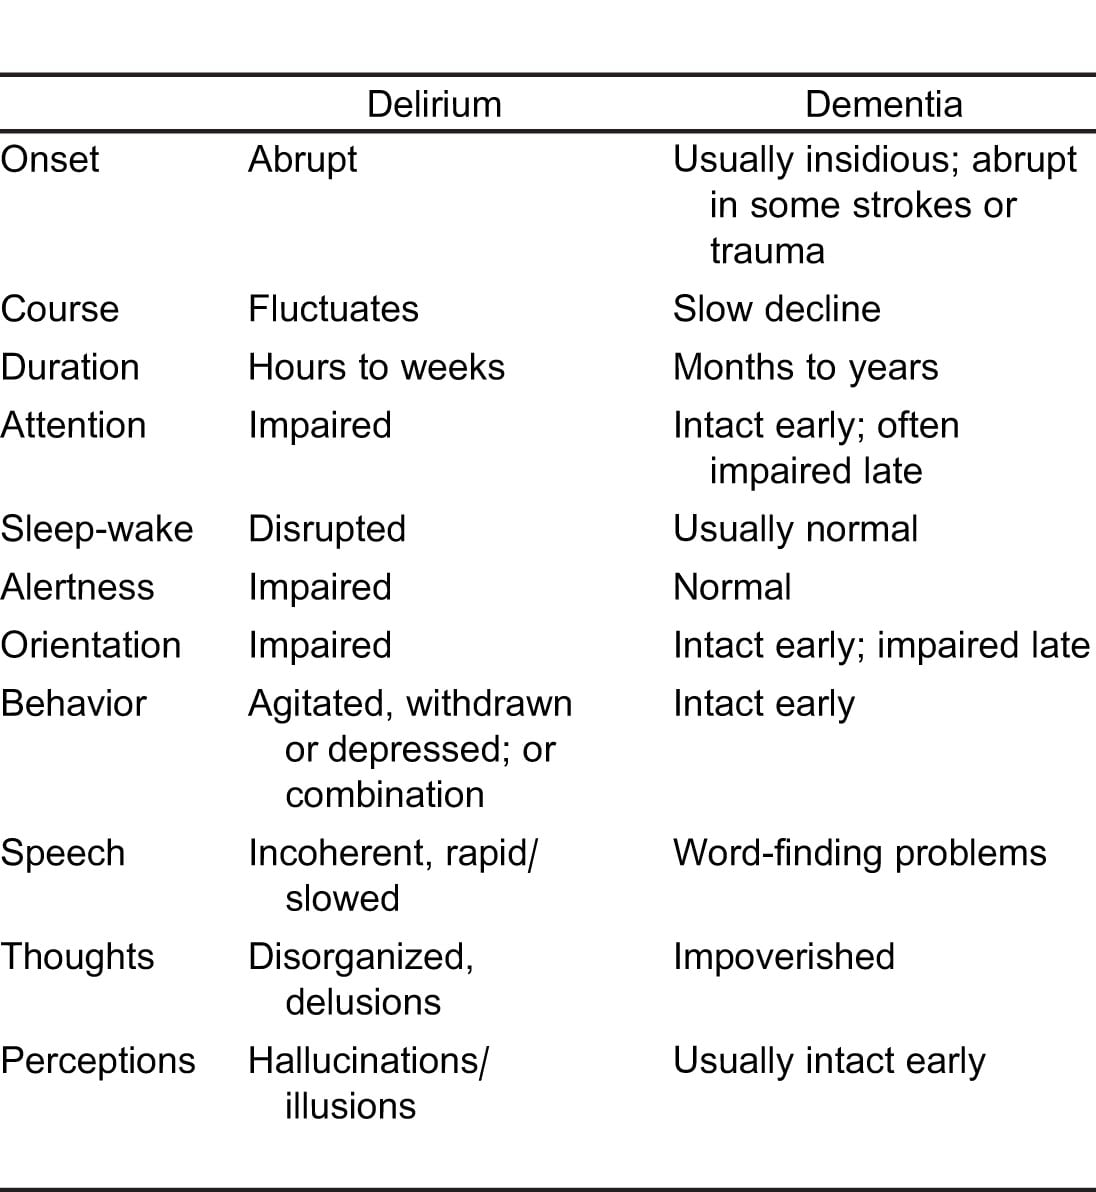 Emergency Department Management of Delirium in the Elderly - The ...